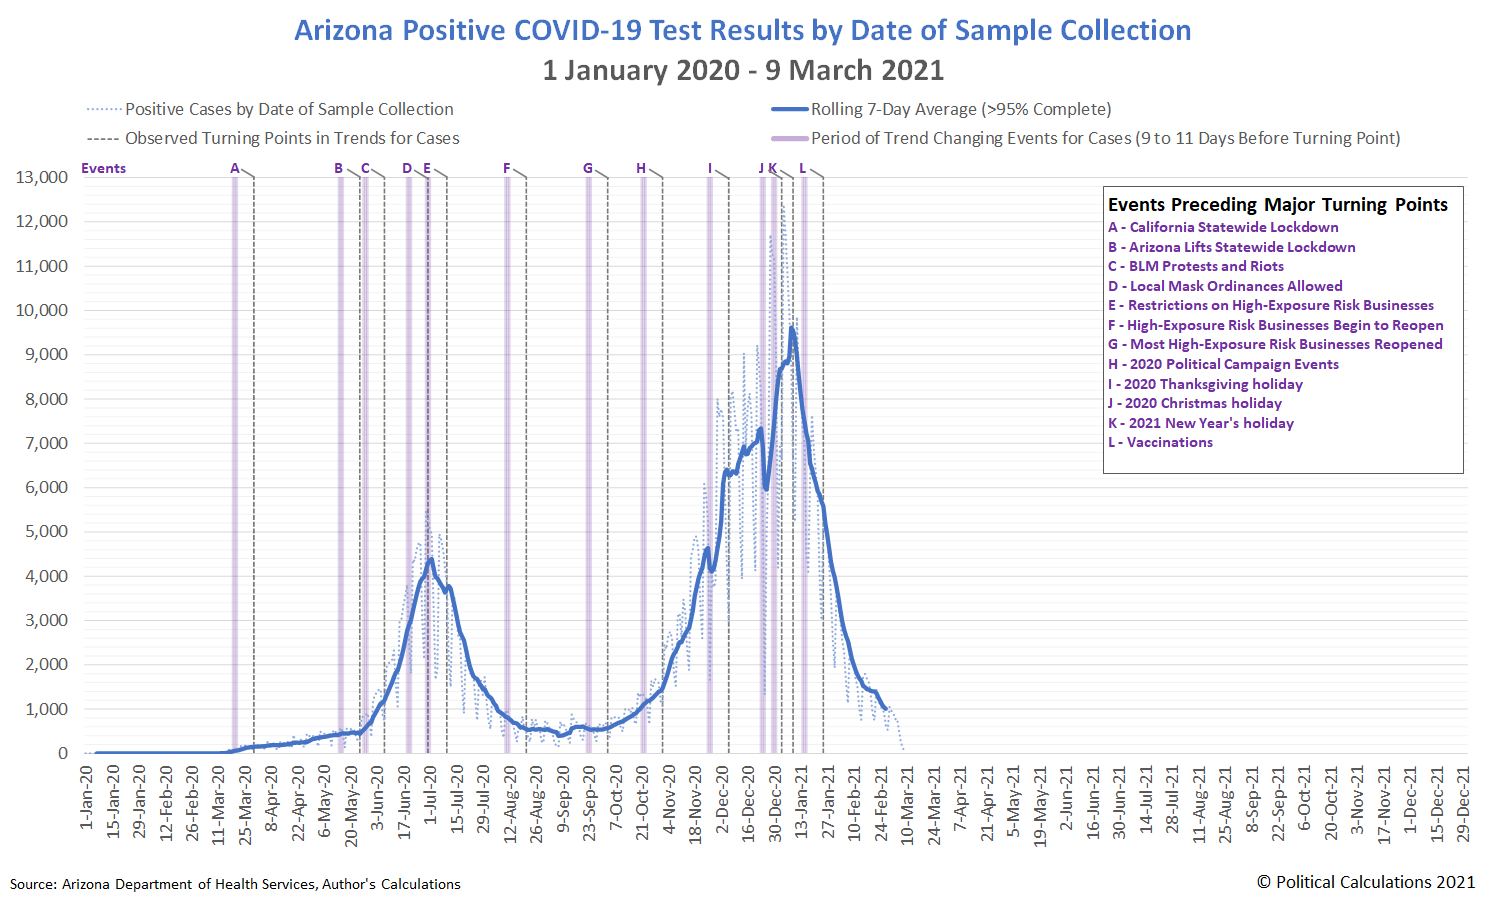 Arizona Positive COVID-19 Test Results by Date of Sample Collection, 1 January 2020 - 9 March 2021